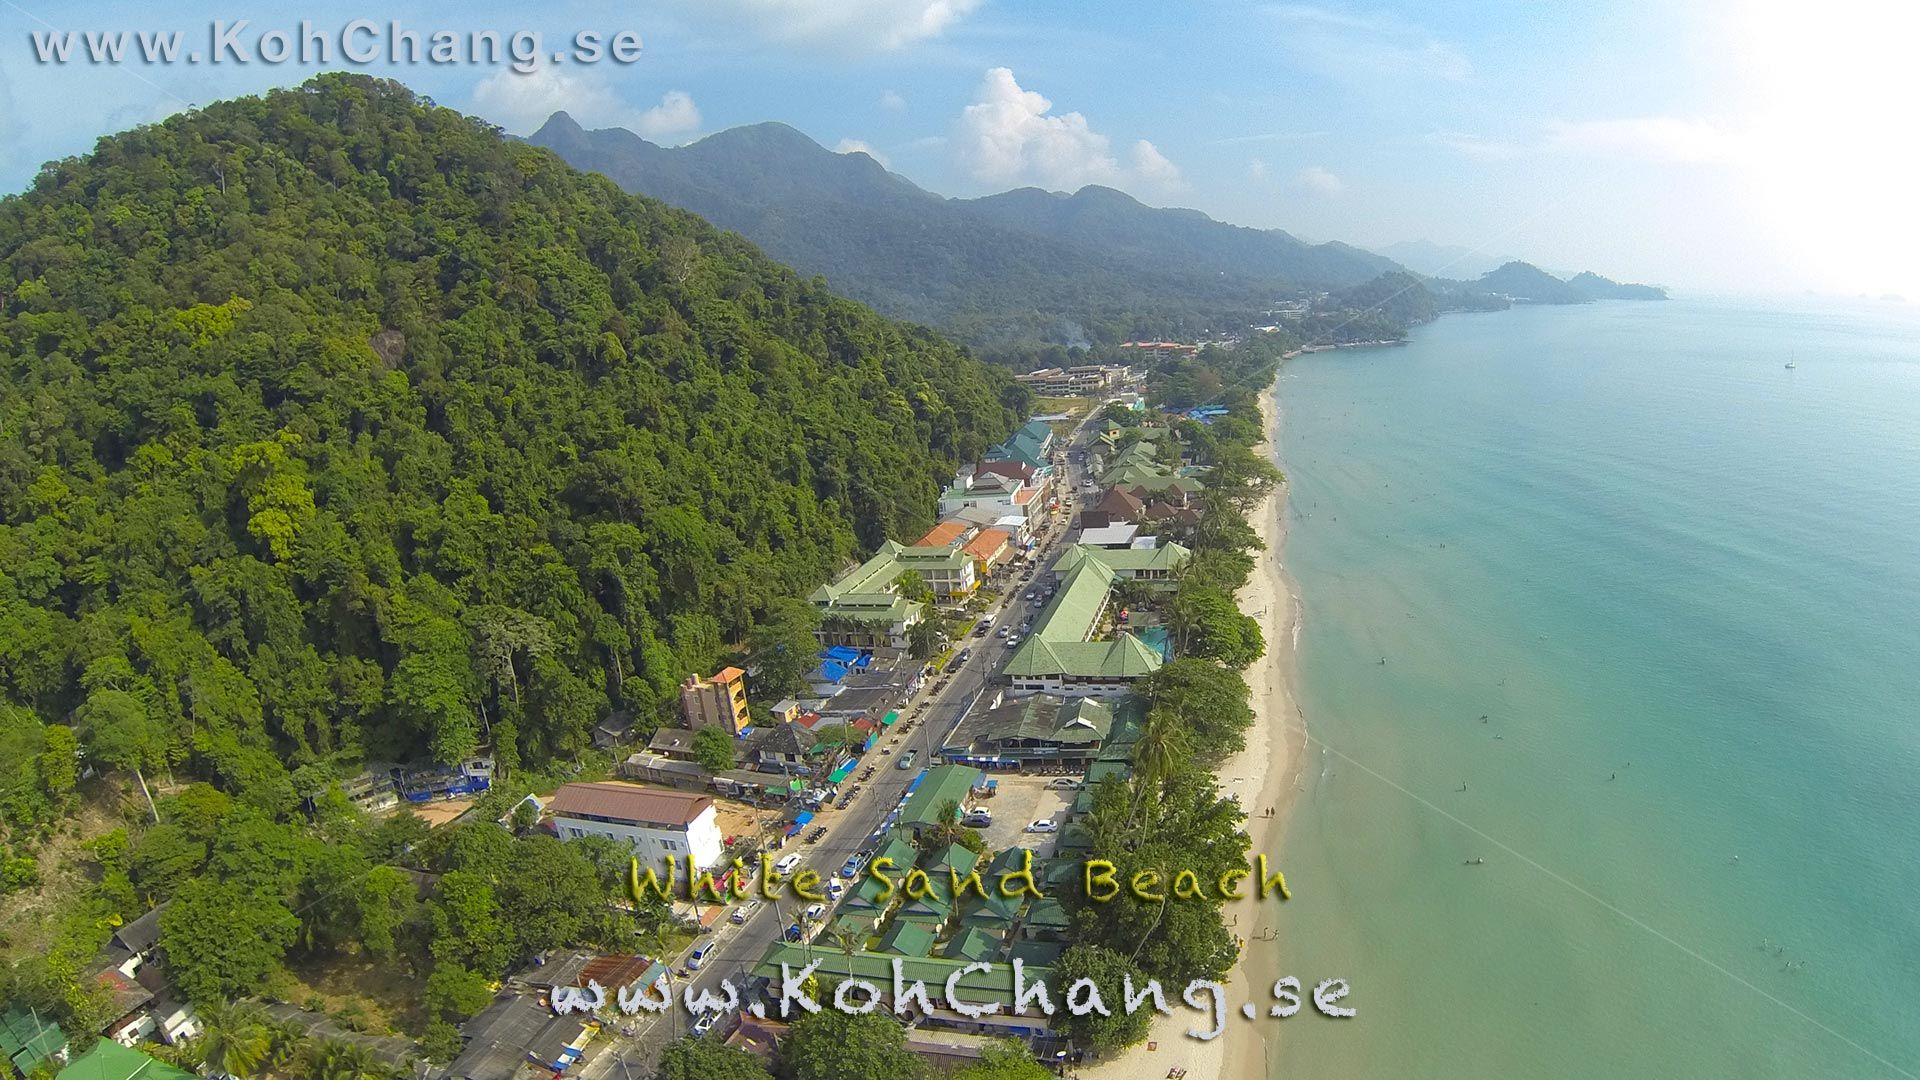 This Great Shot Of White Sand Beach Shows The Most Built Up Strip On Koh Chang